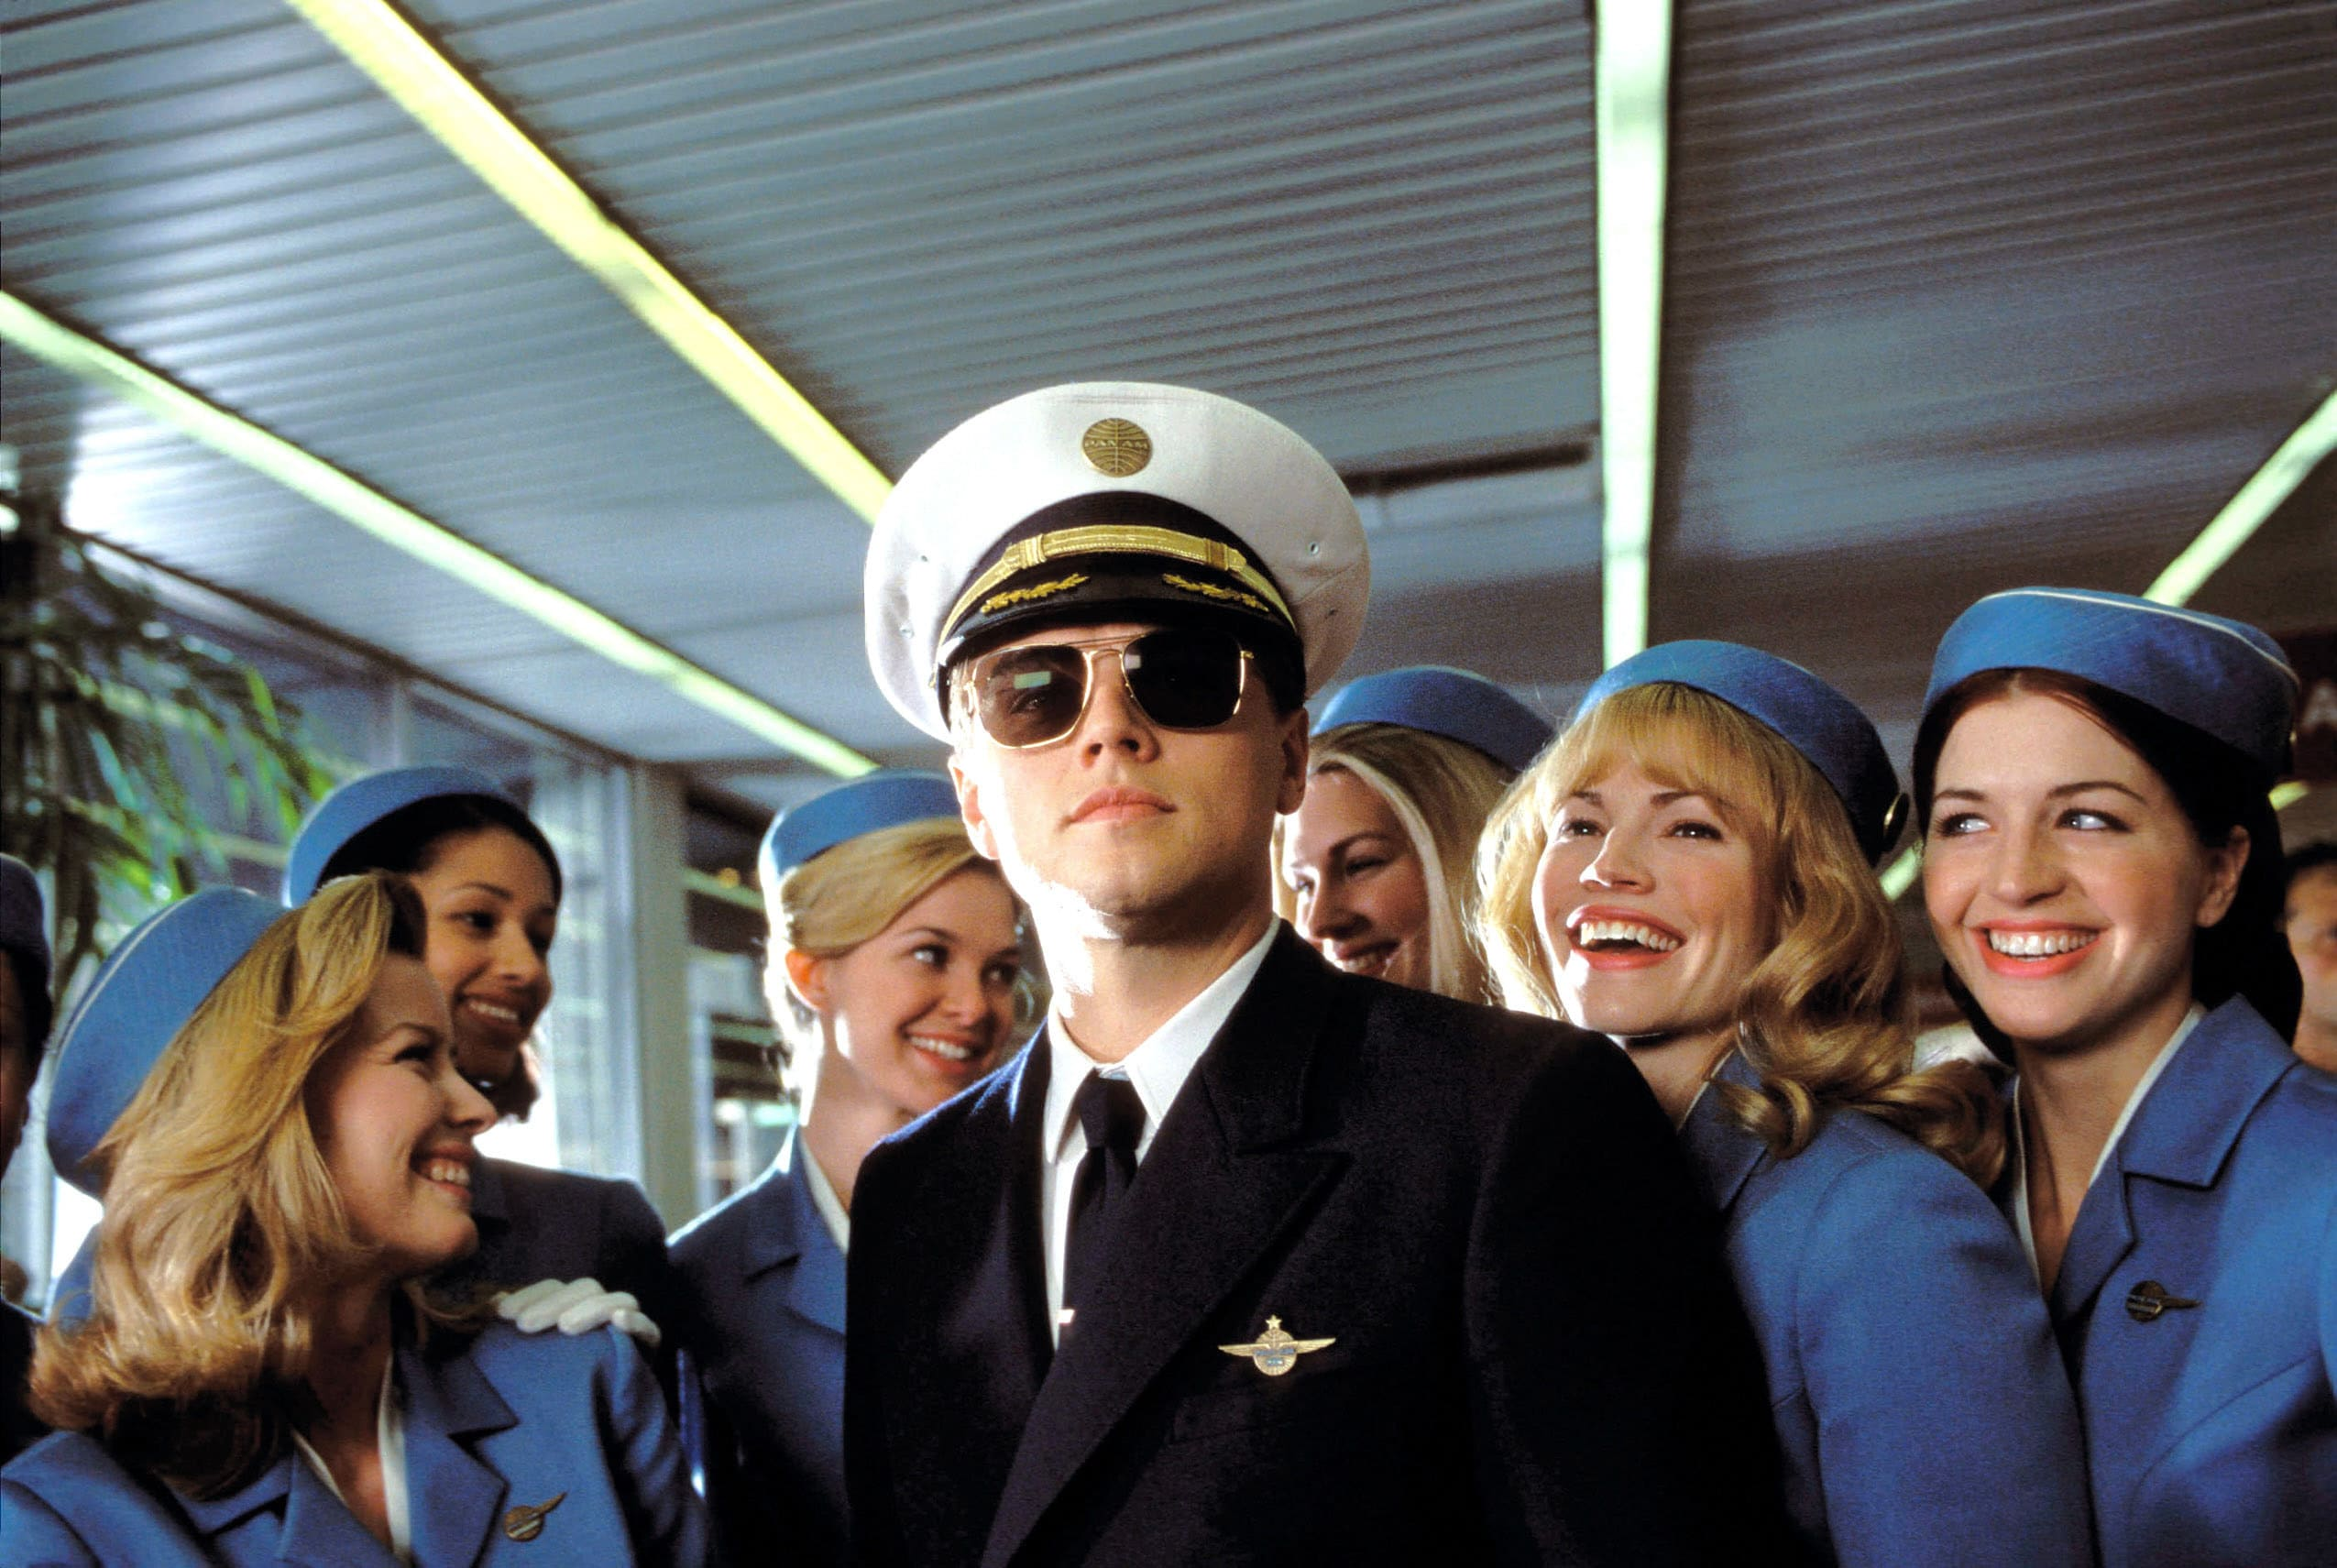 Leonardo DiCaprio as a pilot surrounded by flight attendents